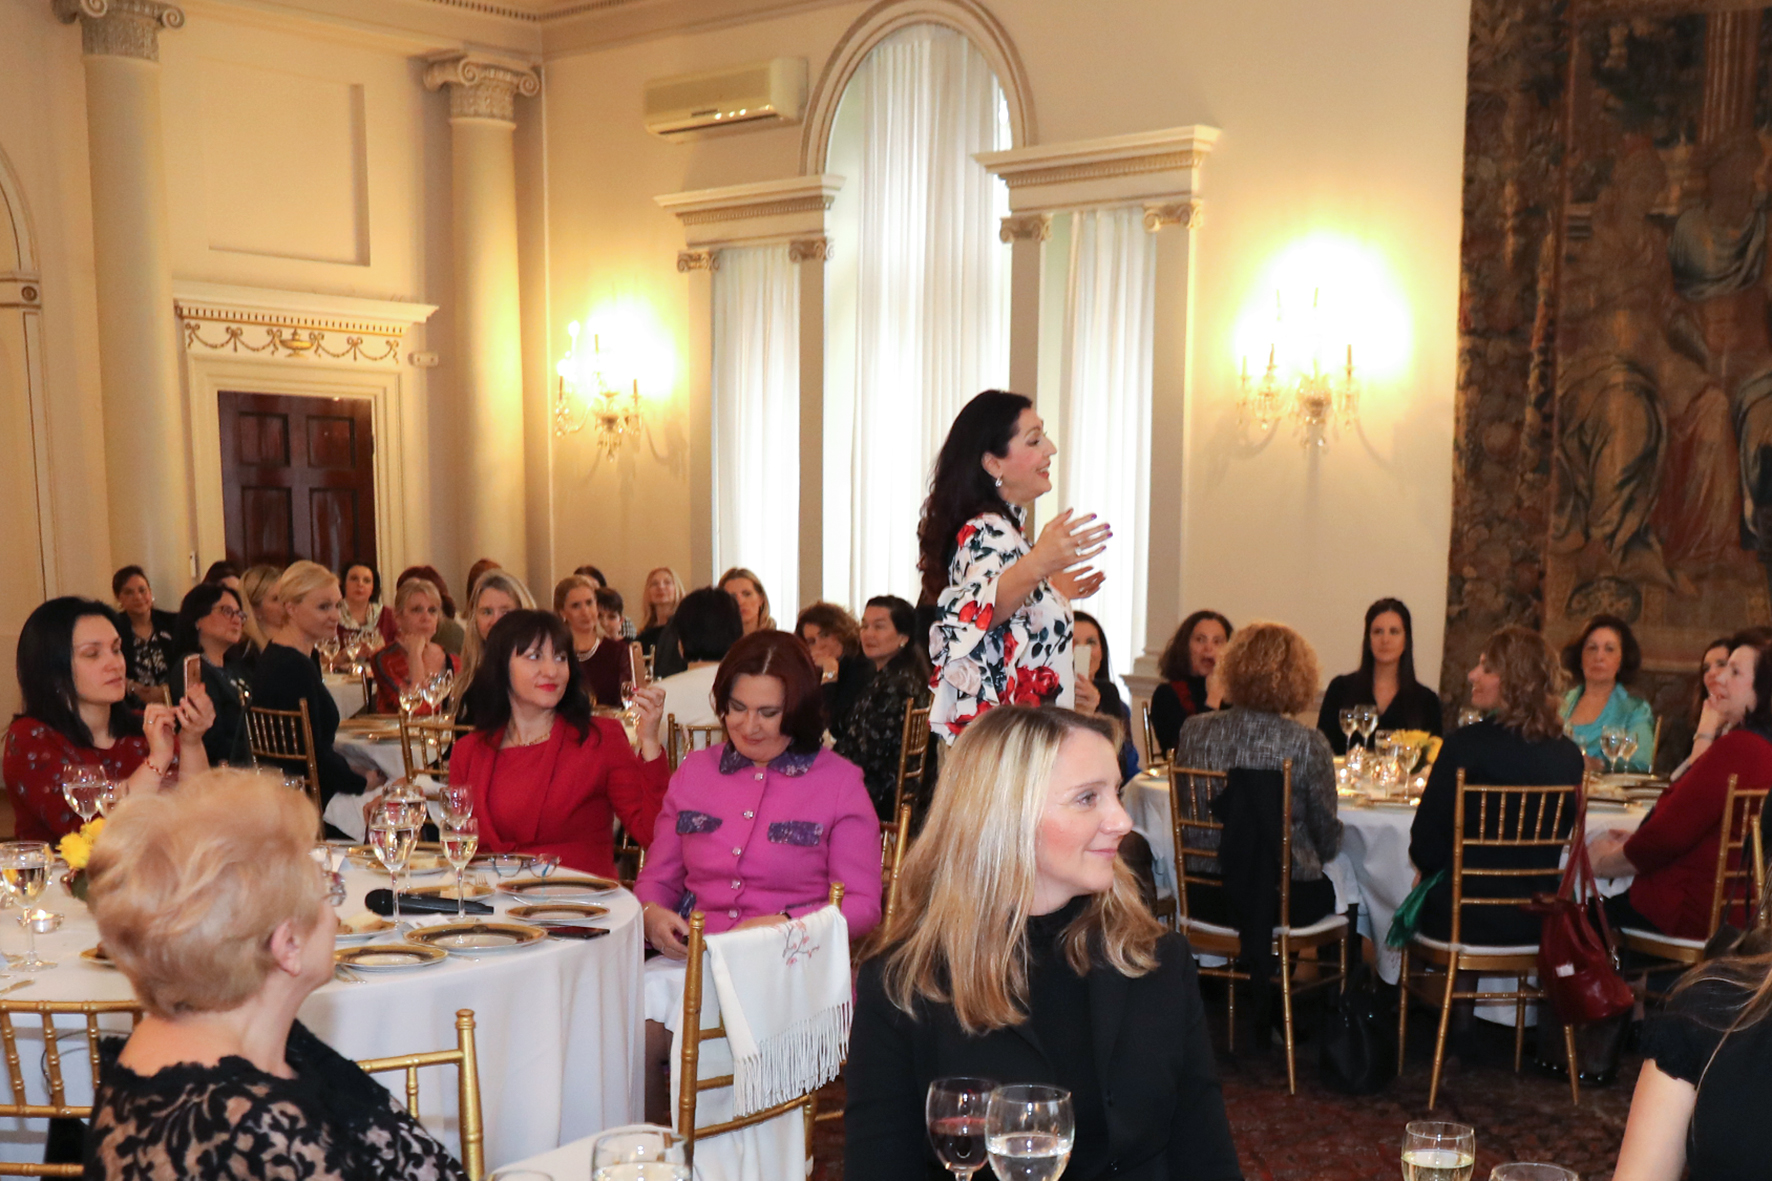 Opera singer Jadranka Jovanovic performs at the traditional Ladies' Lunch